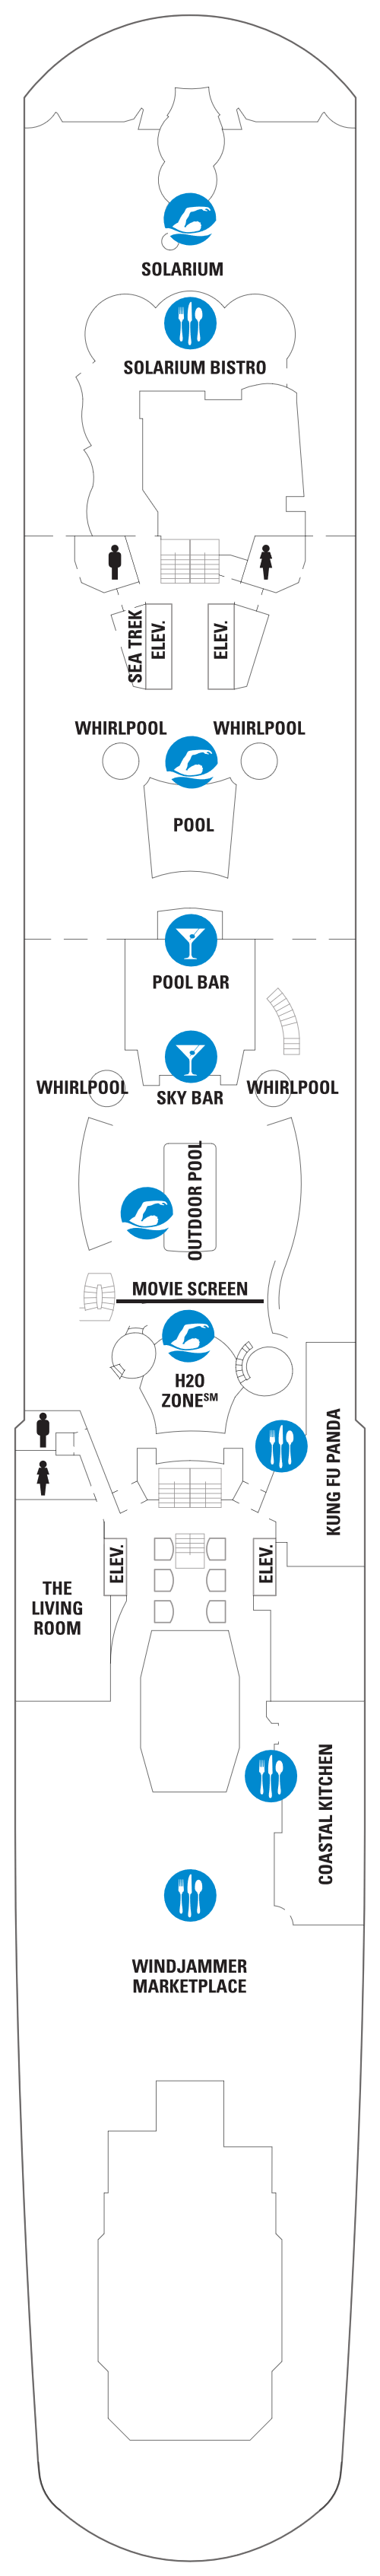 Quantum Of The Seas Deck 14 layout